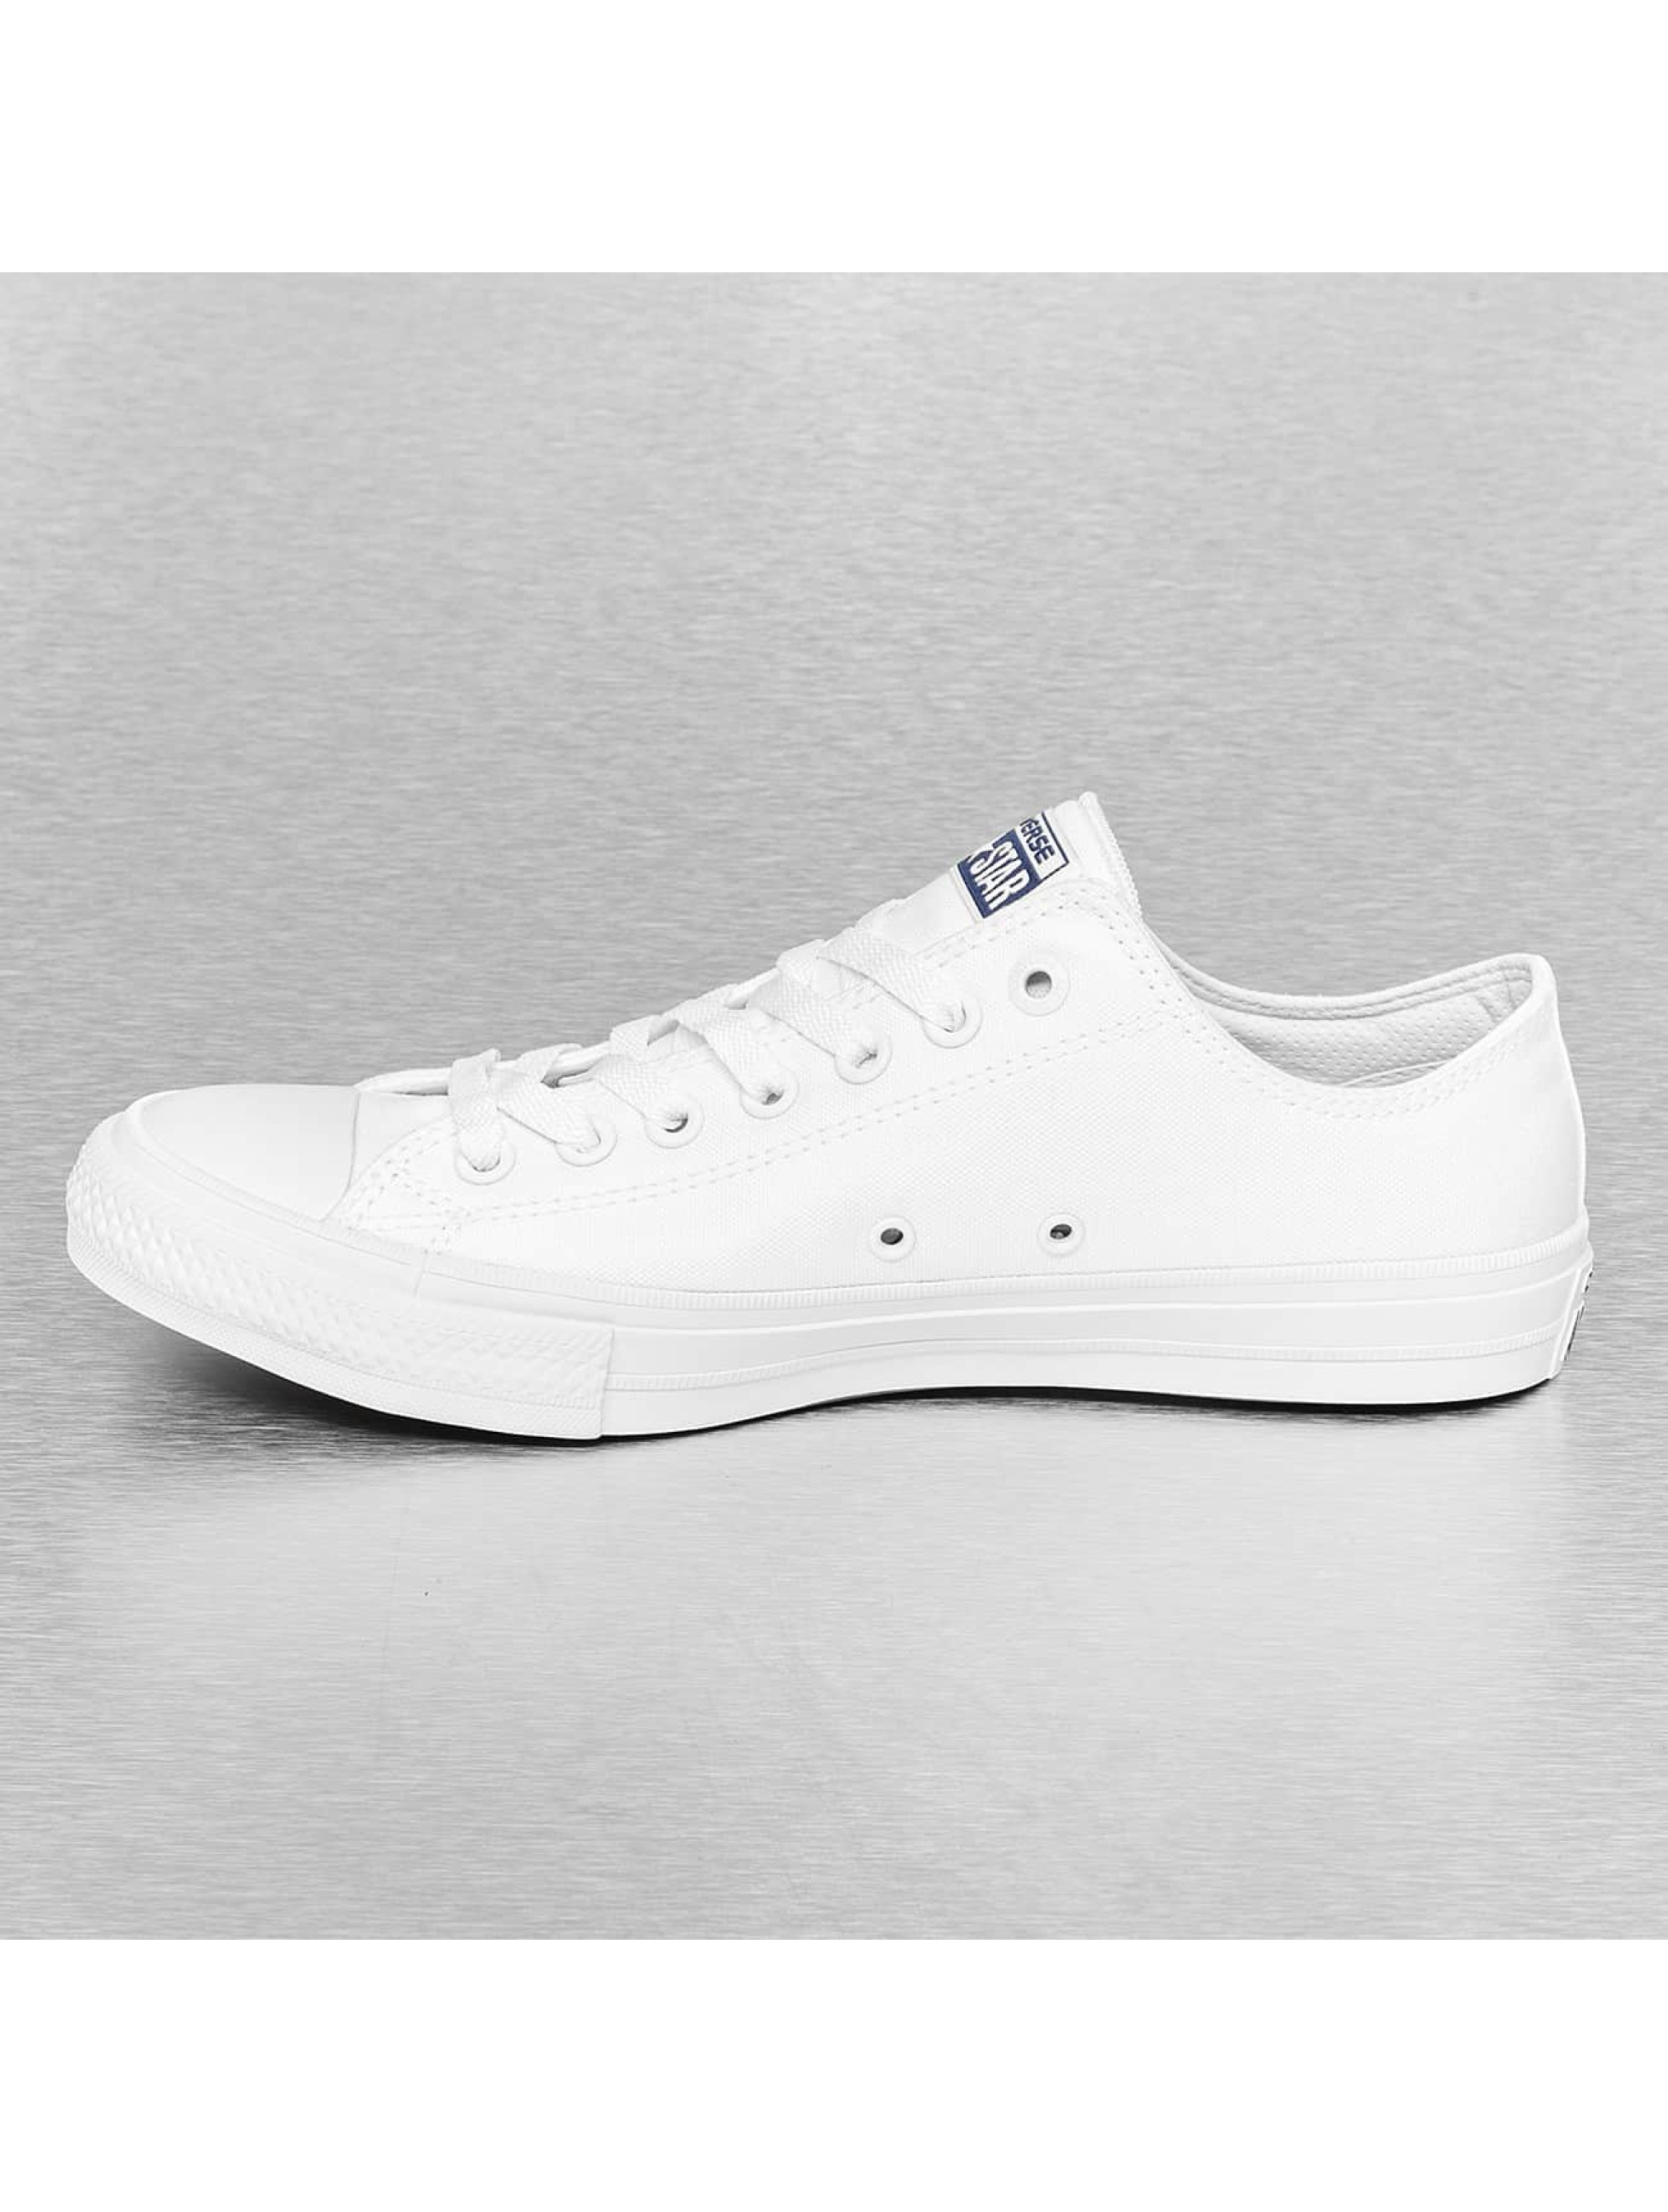 Converse Baskets Chuck Taylor All Star II blanc